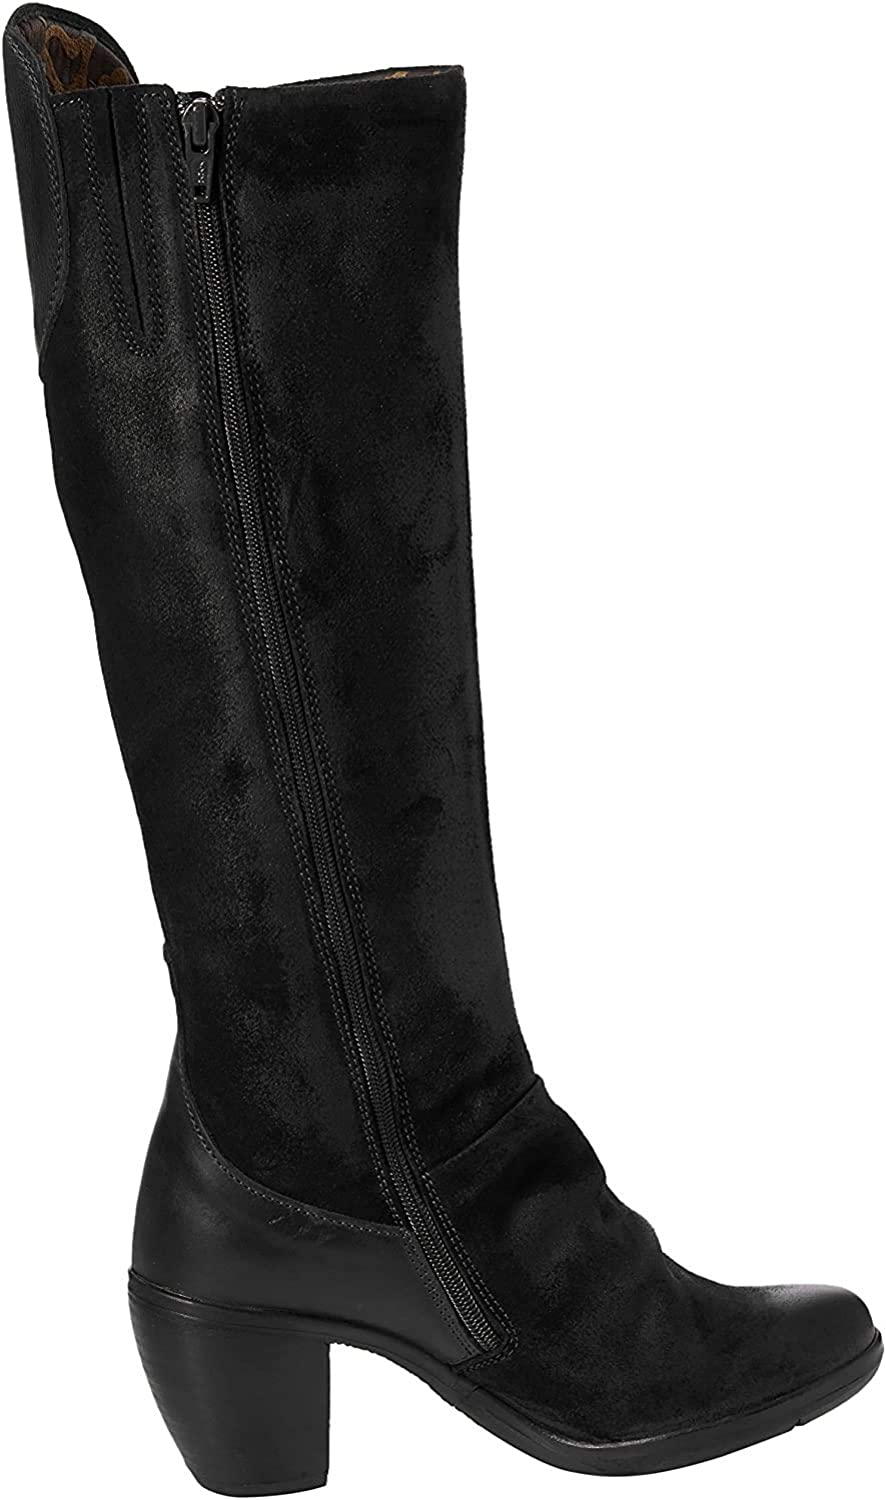 FLY London Women's Hean127fly Fashion Boot, Black